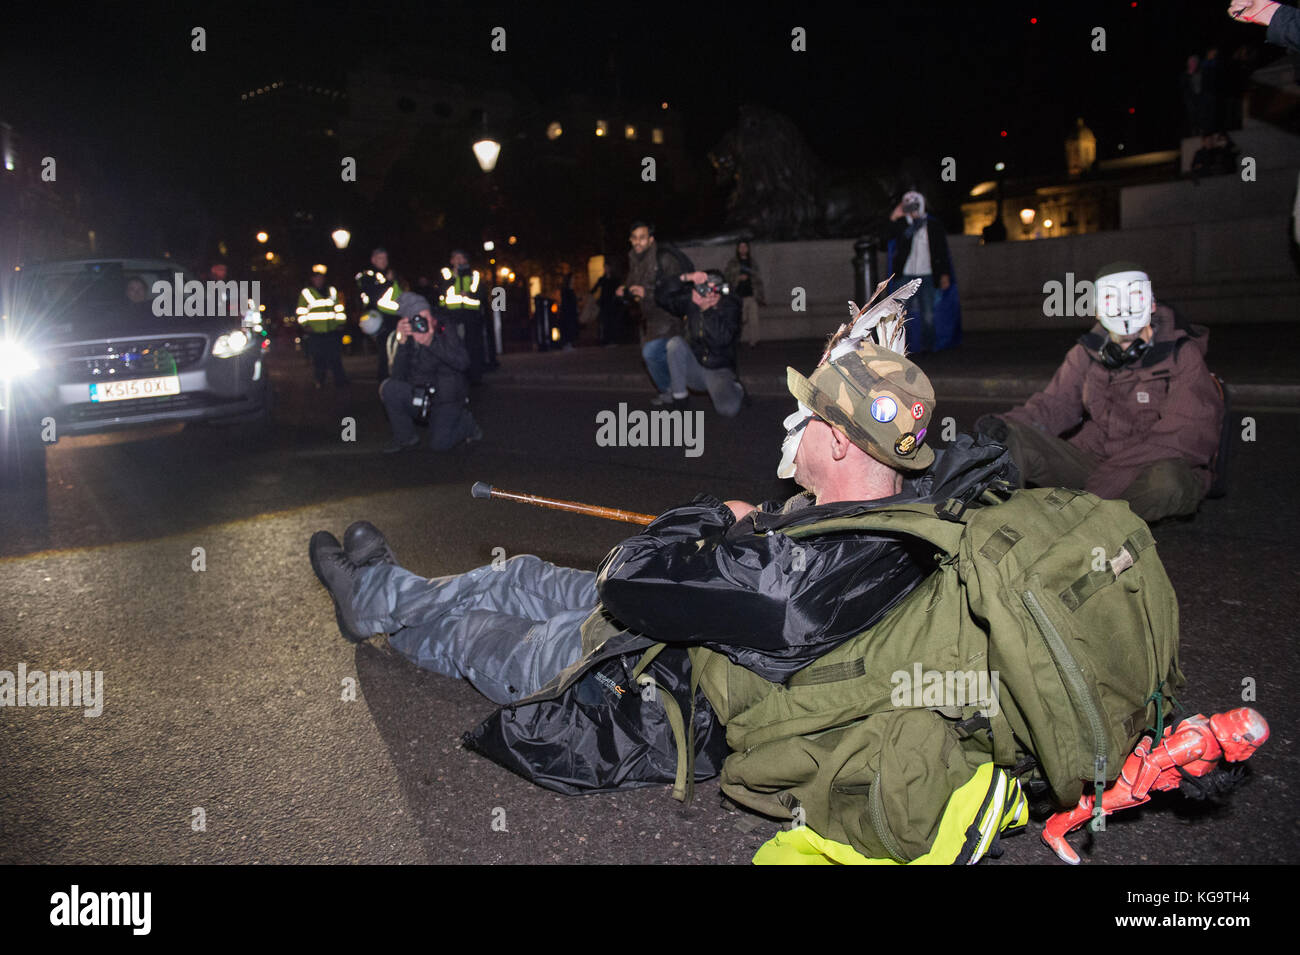 London, United Kingdom. 05th Nov, 2017. Million Mask March 2017 takes place in central London. Protesters block - Stock Image